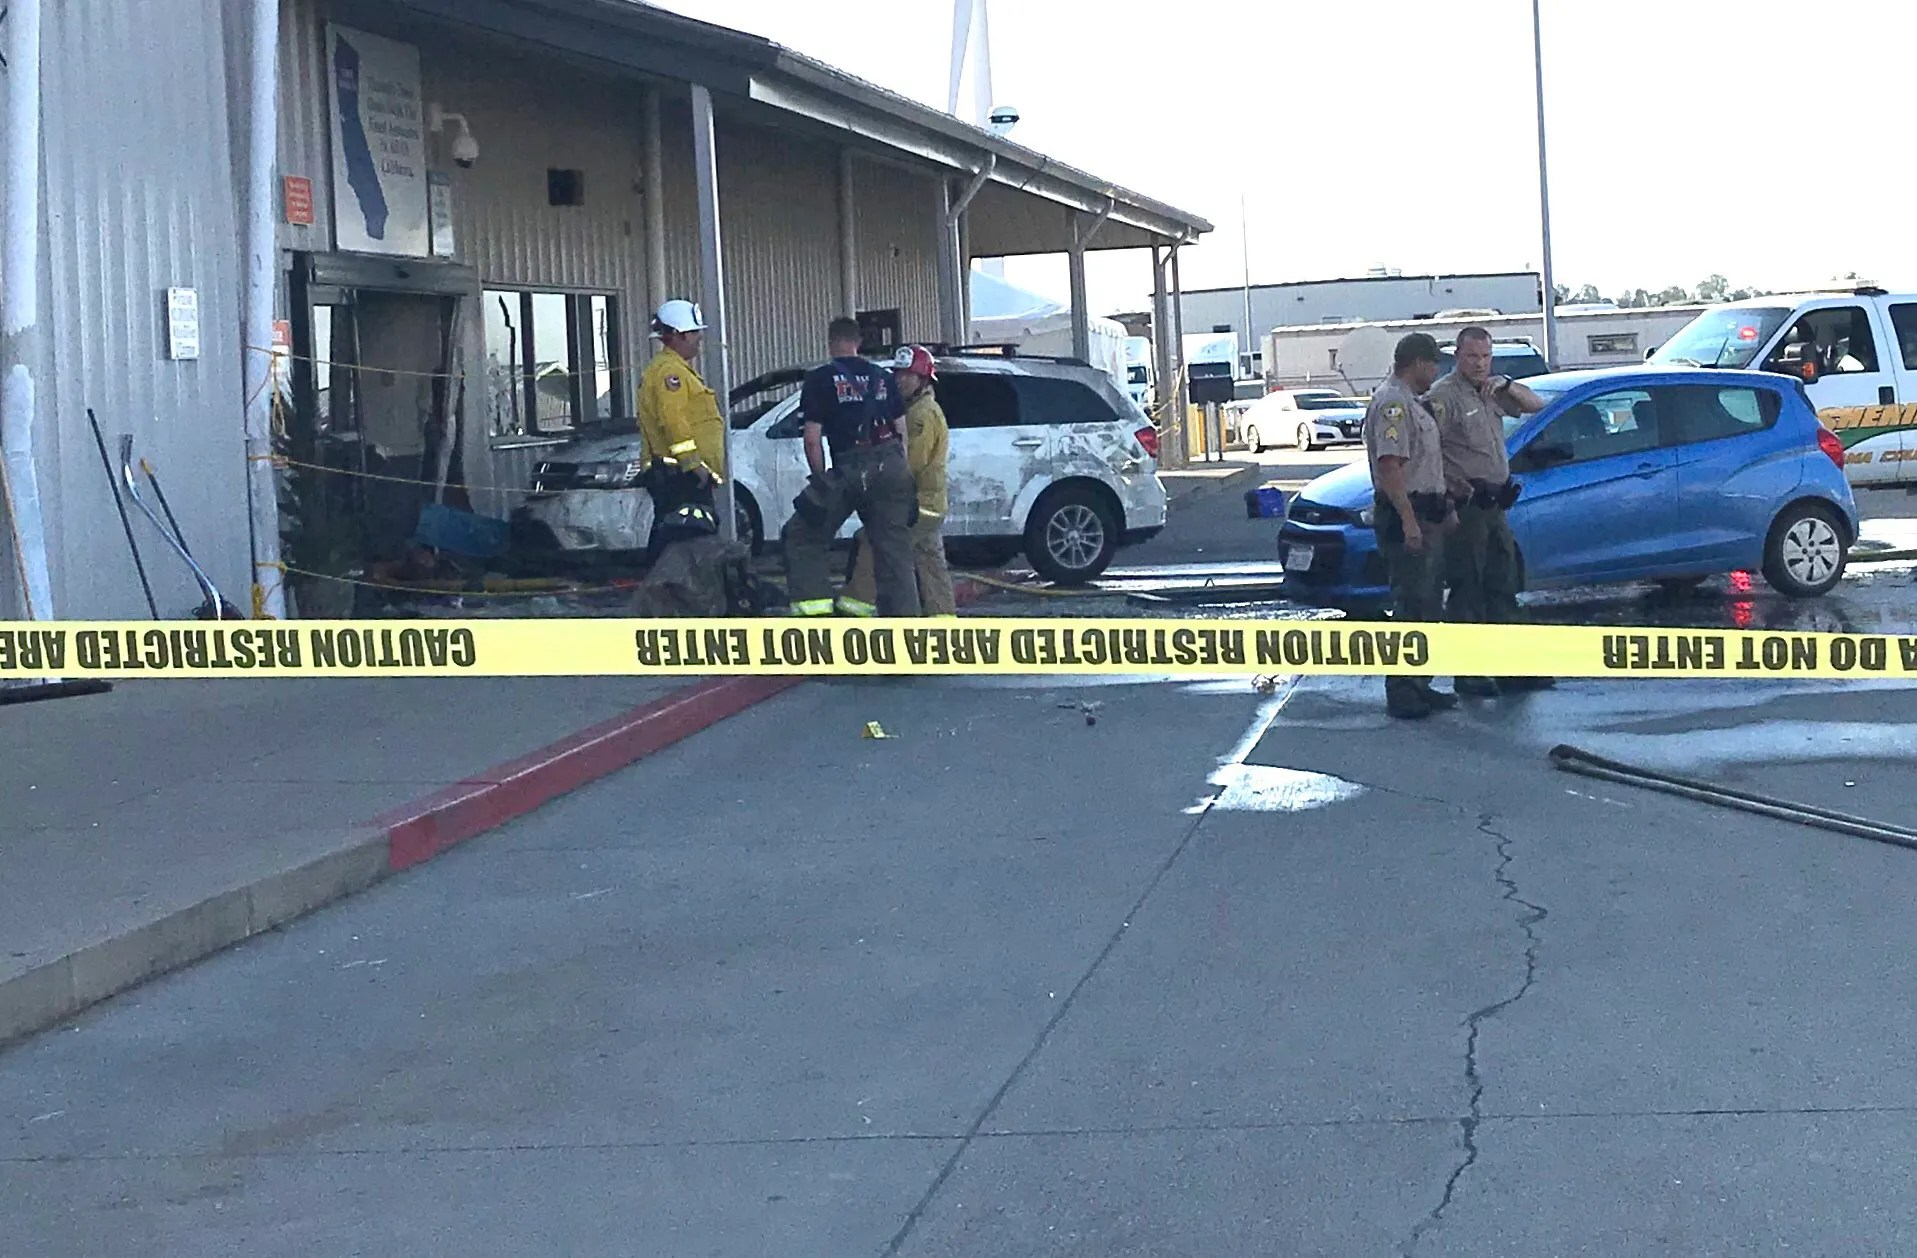 Photo of At least 2 people dead in shooting at California Walmart distribution center, authorities say